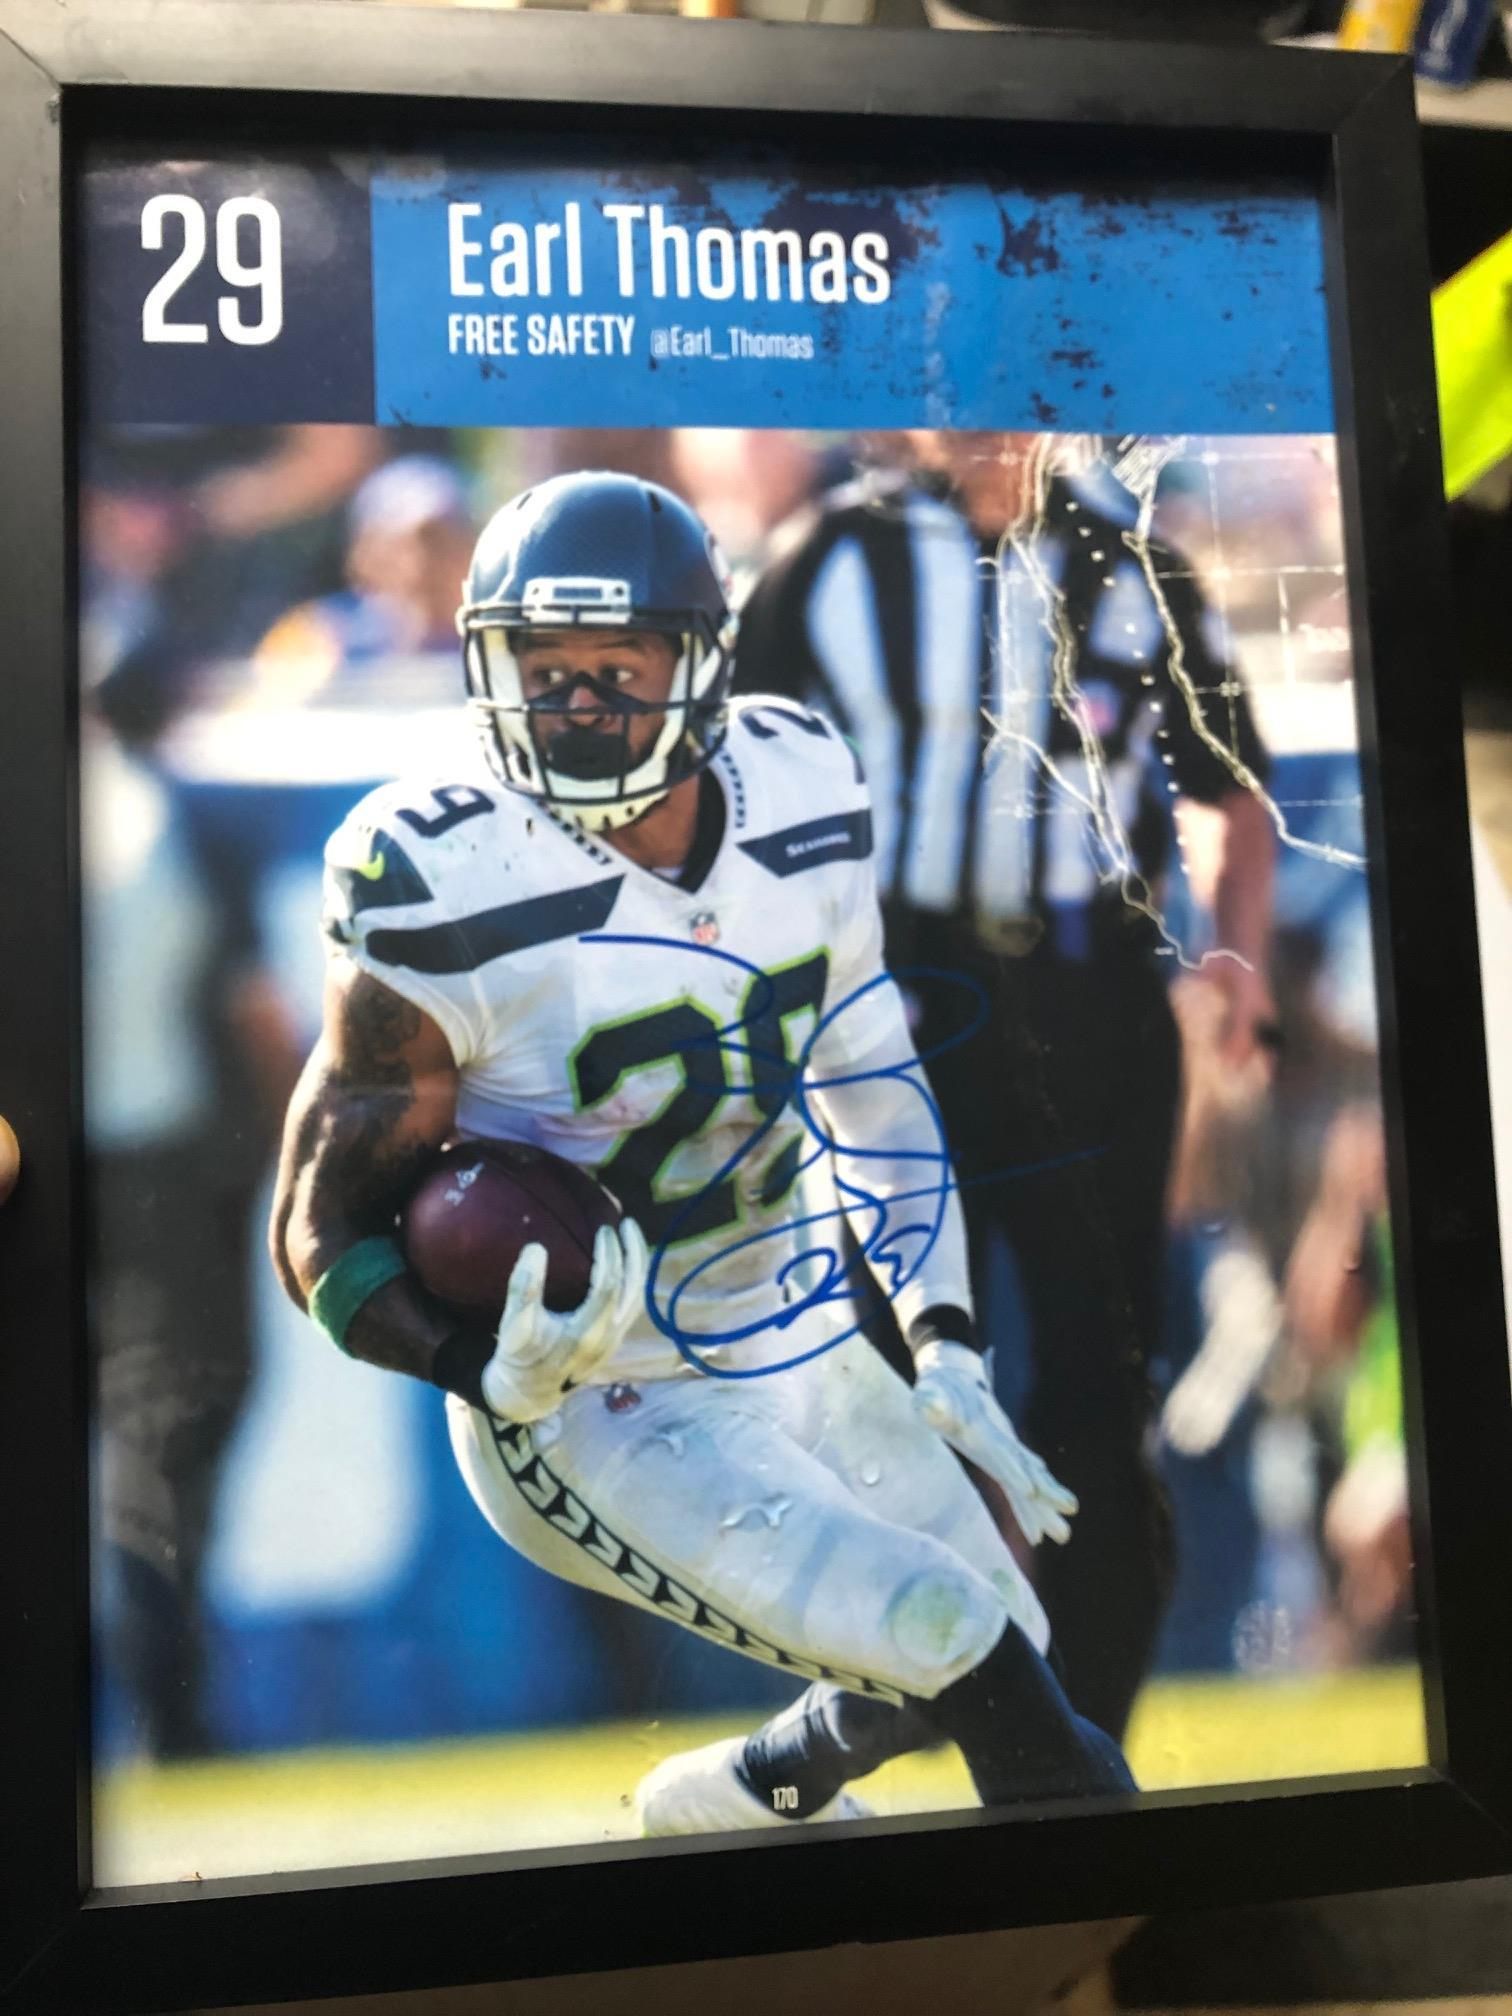 Framed autographed Earl Thomas Seahawk legend and future Hall of Famer